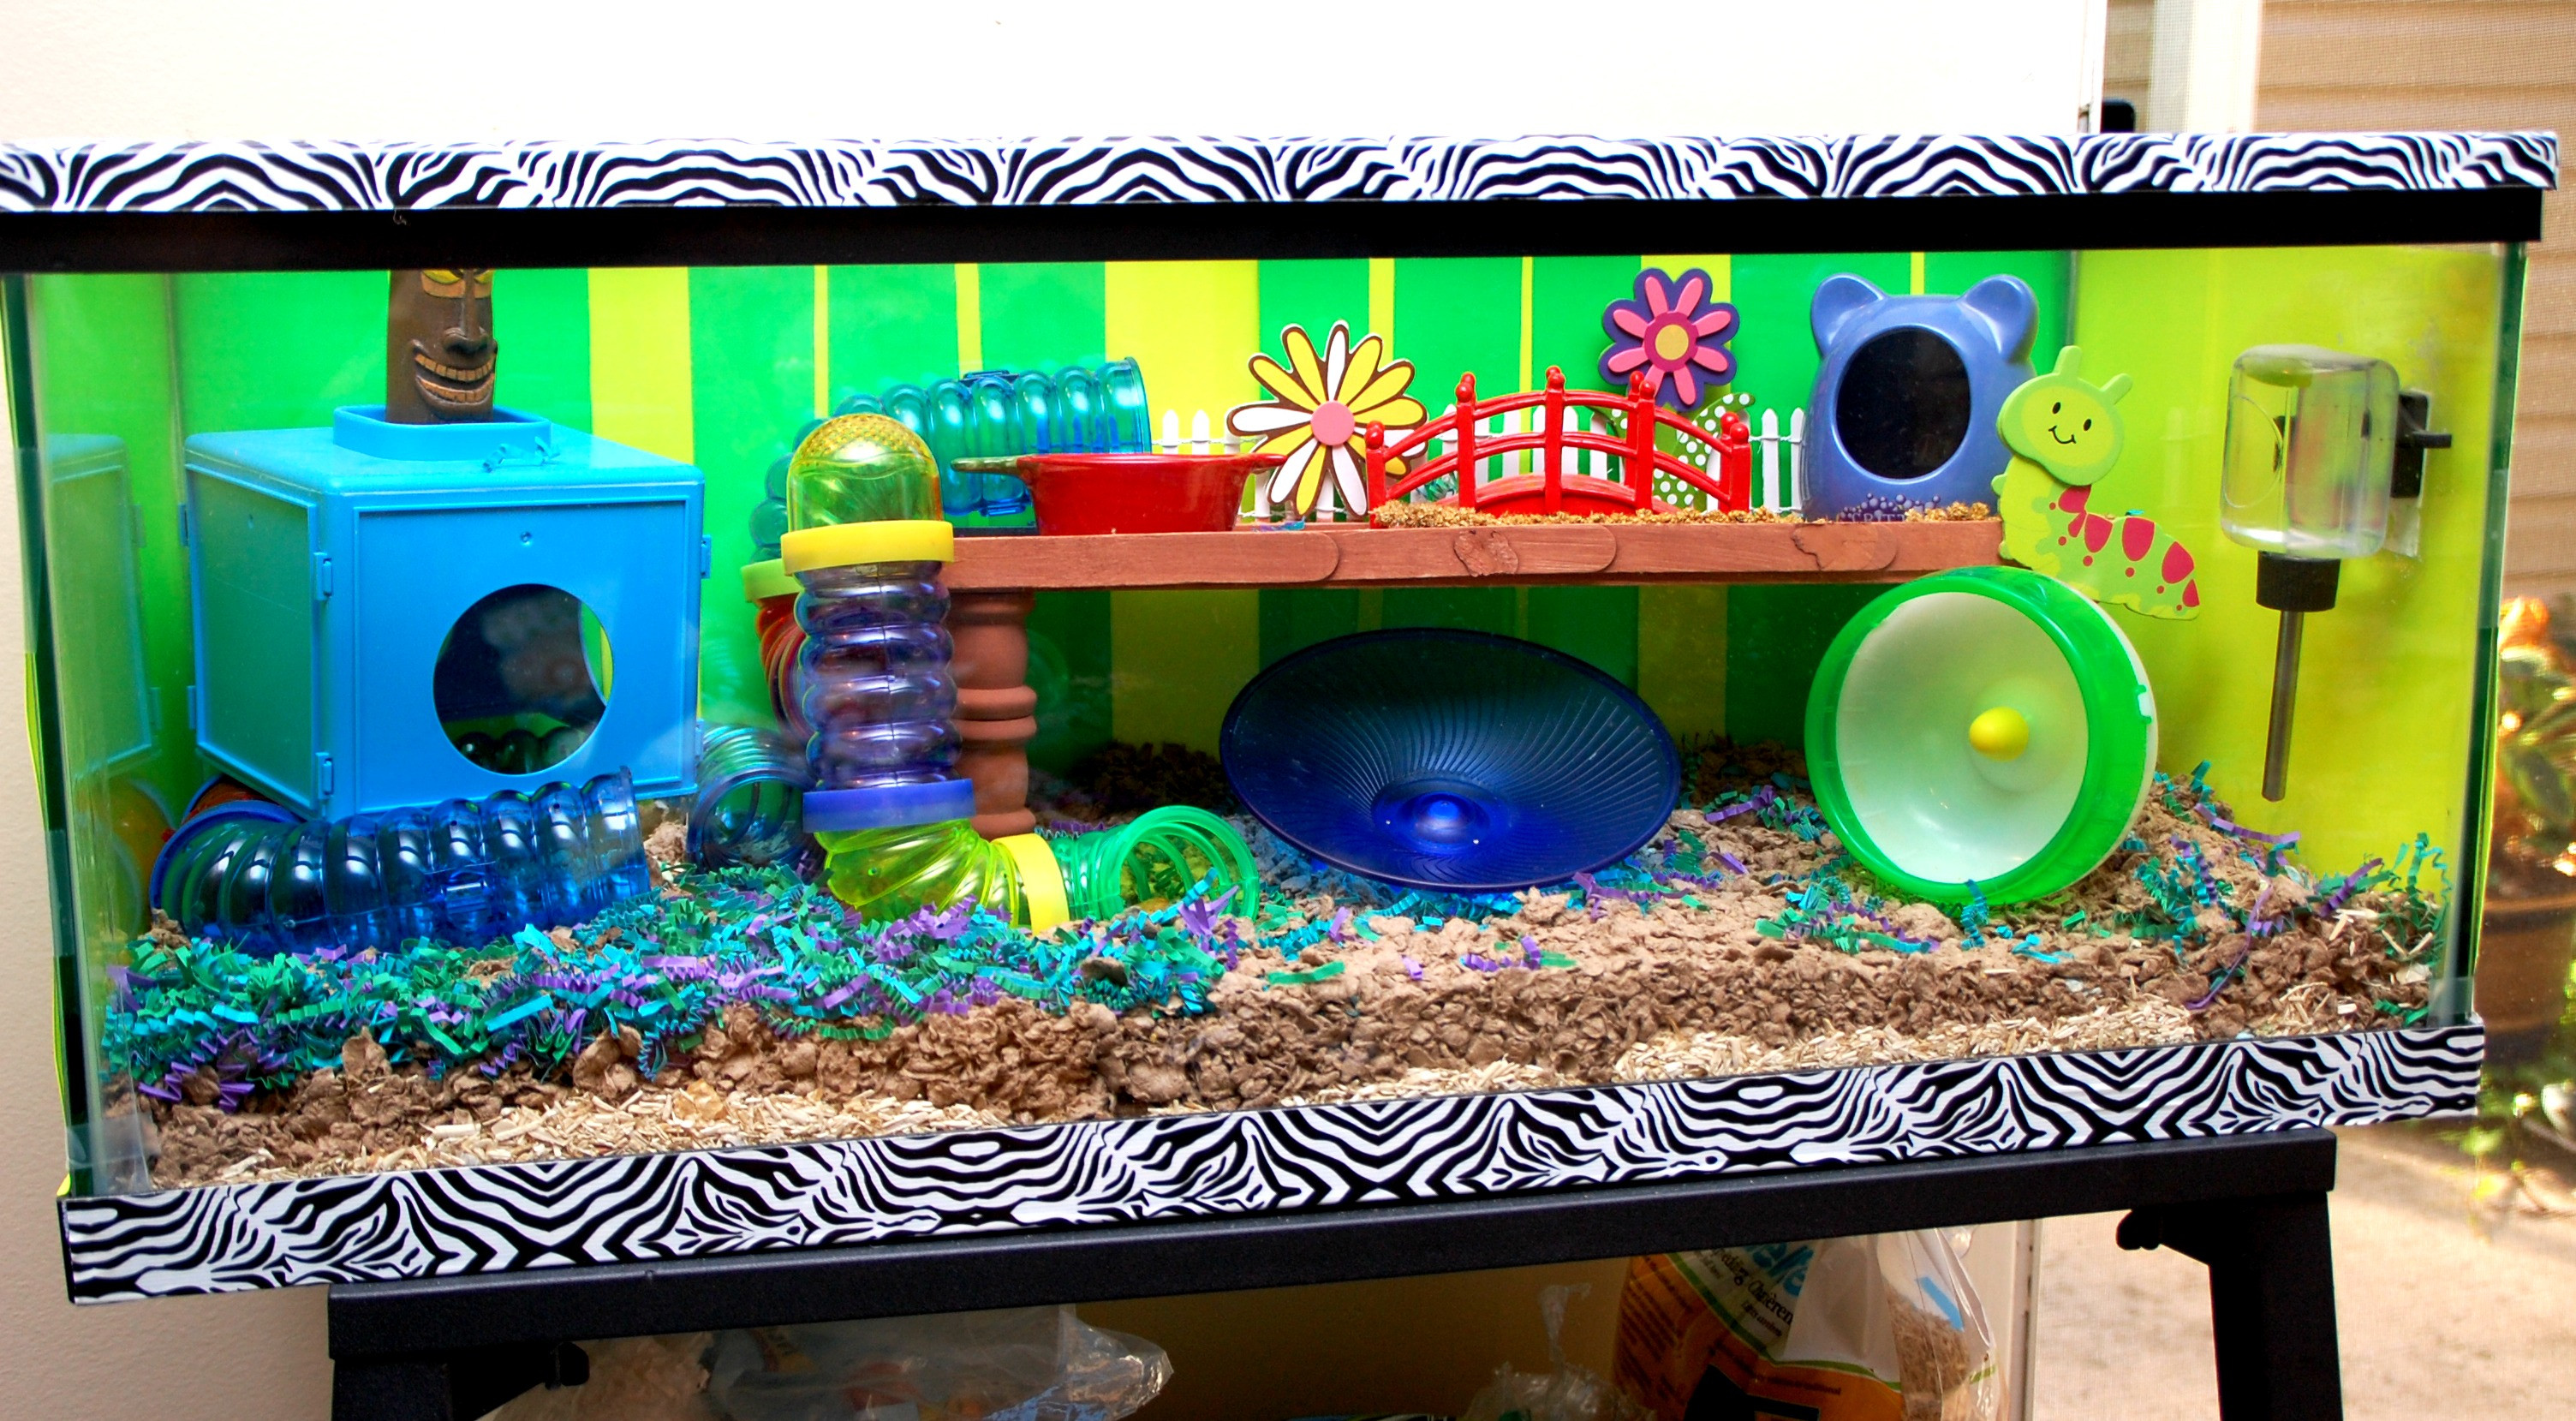 Best ideas about DIY Hamster Cage . Save or Pin 301 Moved Permanently Now.